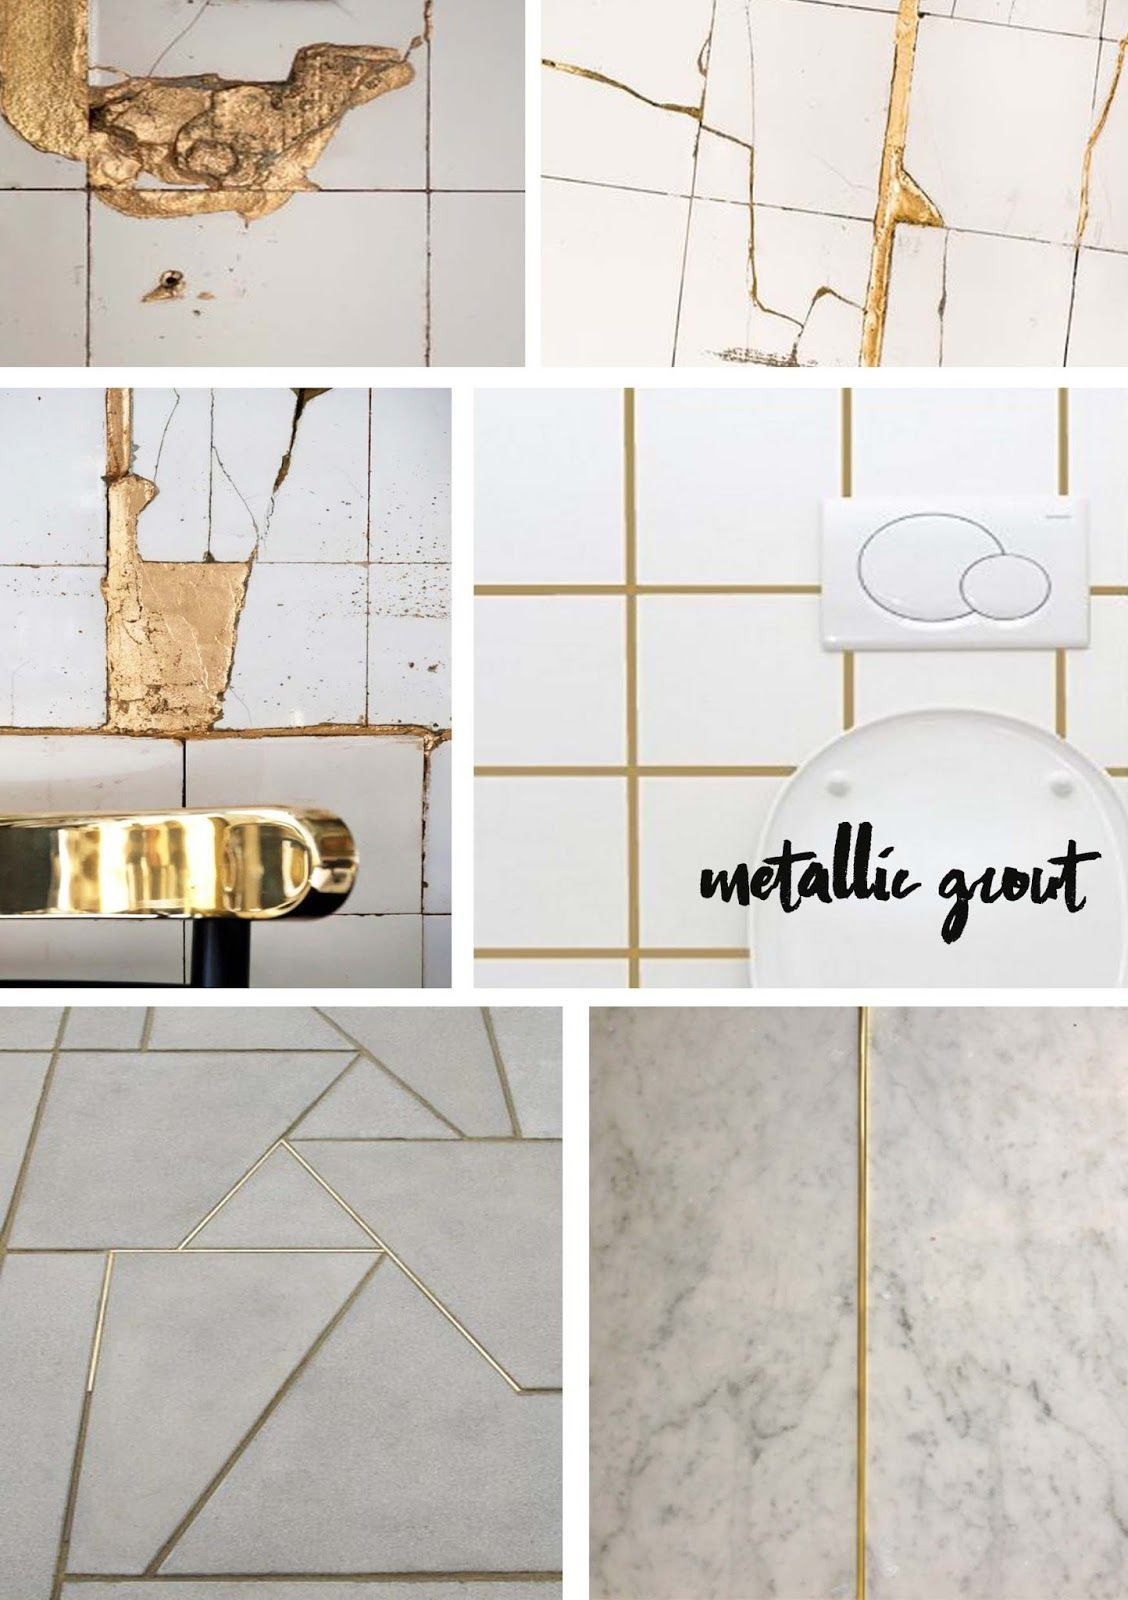 Metallic grout gold and copper creative tiles inspiration taken from